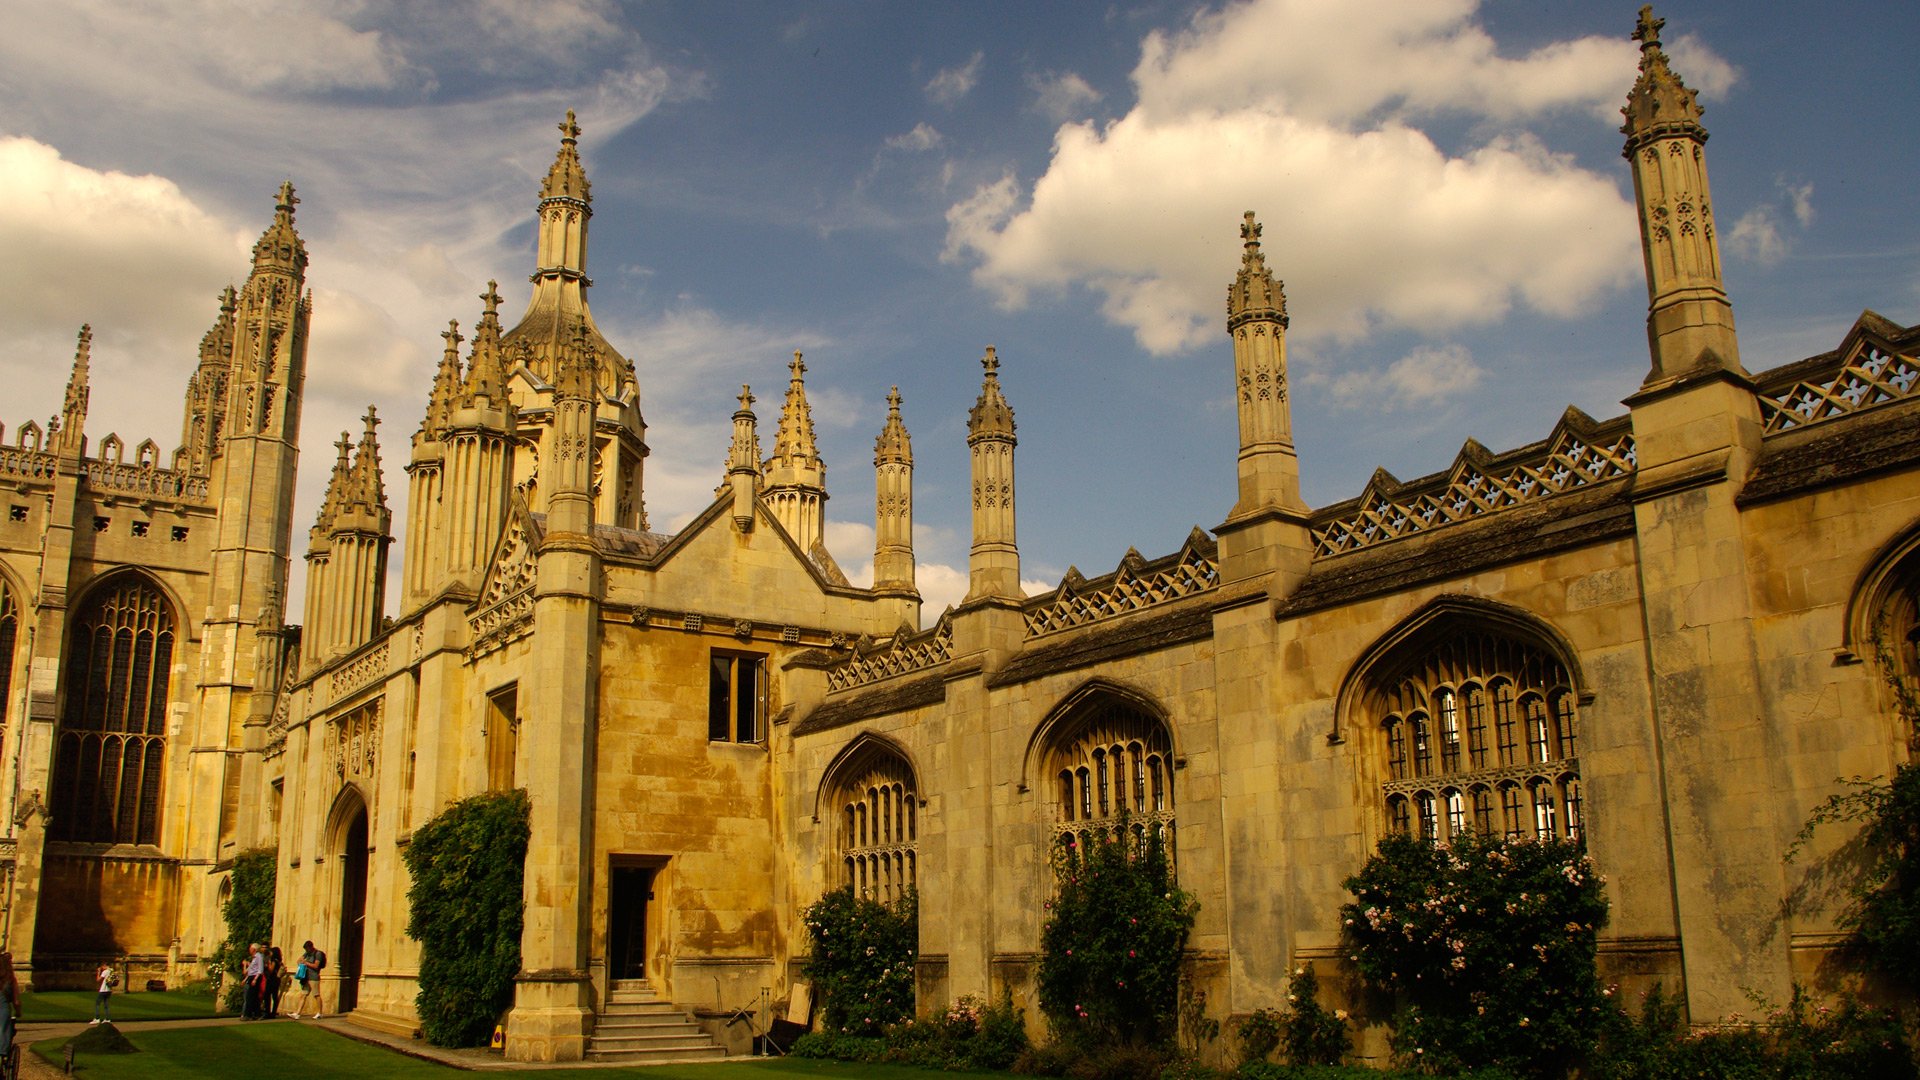 cambridge Kings College gatehouse from Kings College quad